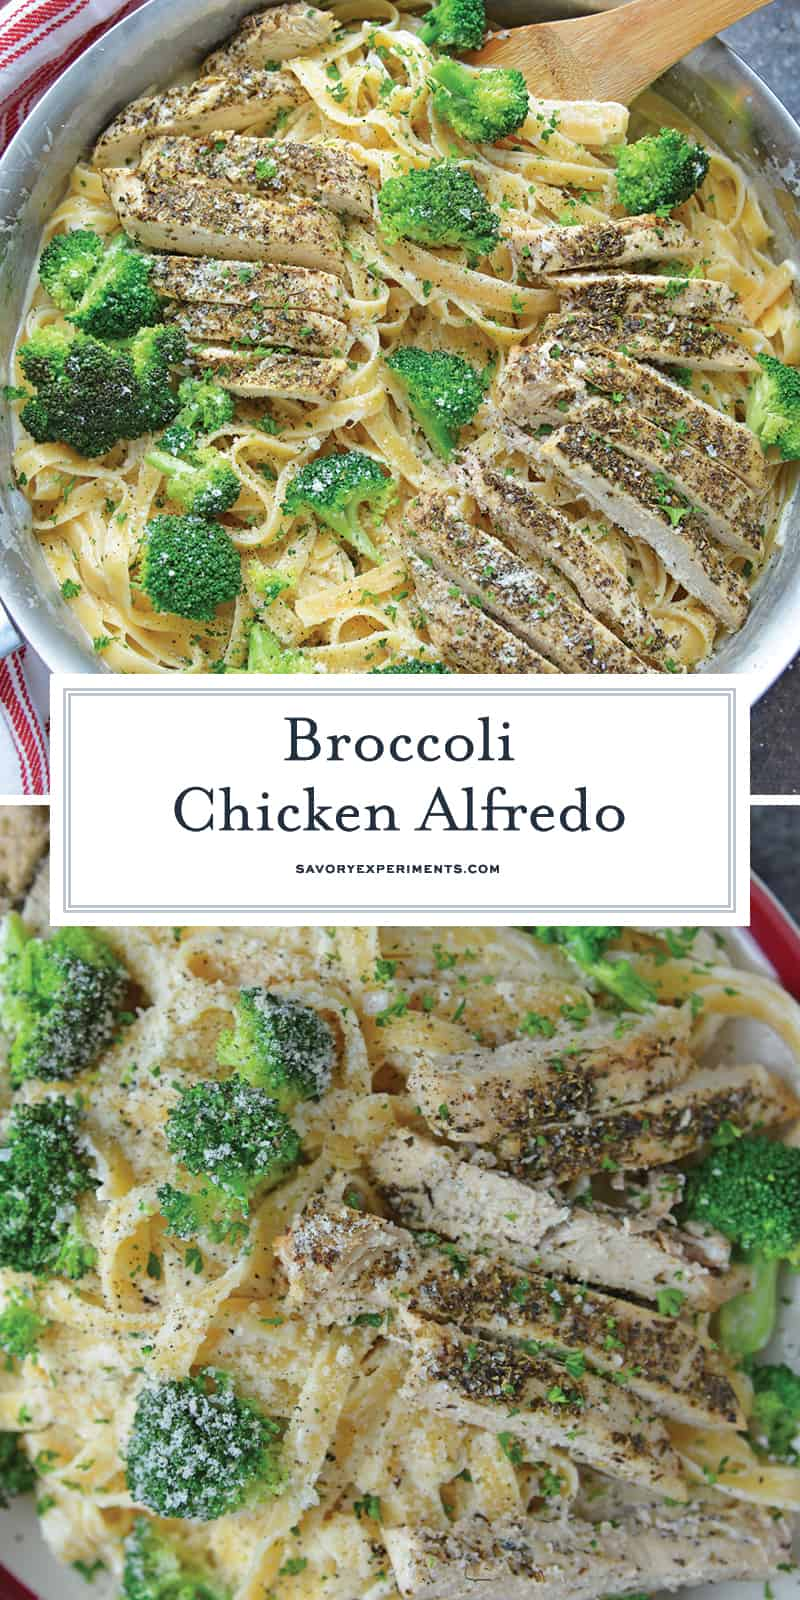 Broccoli Chicken Alfredo for Pinterest